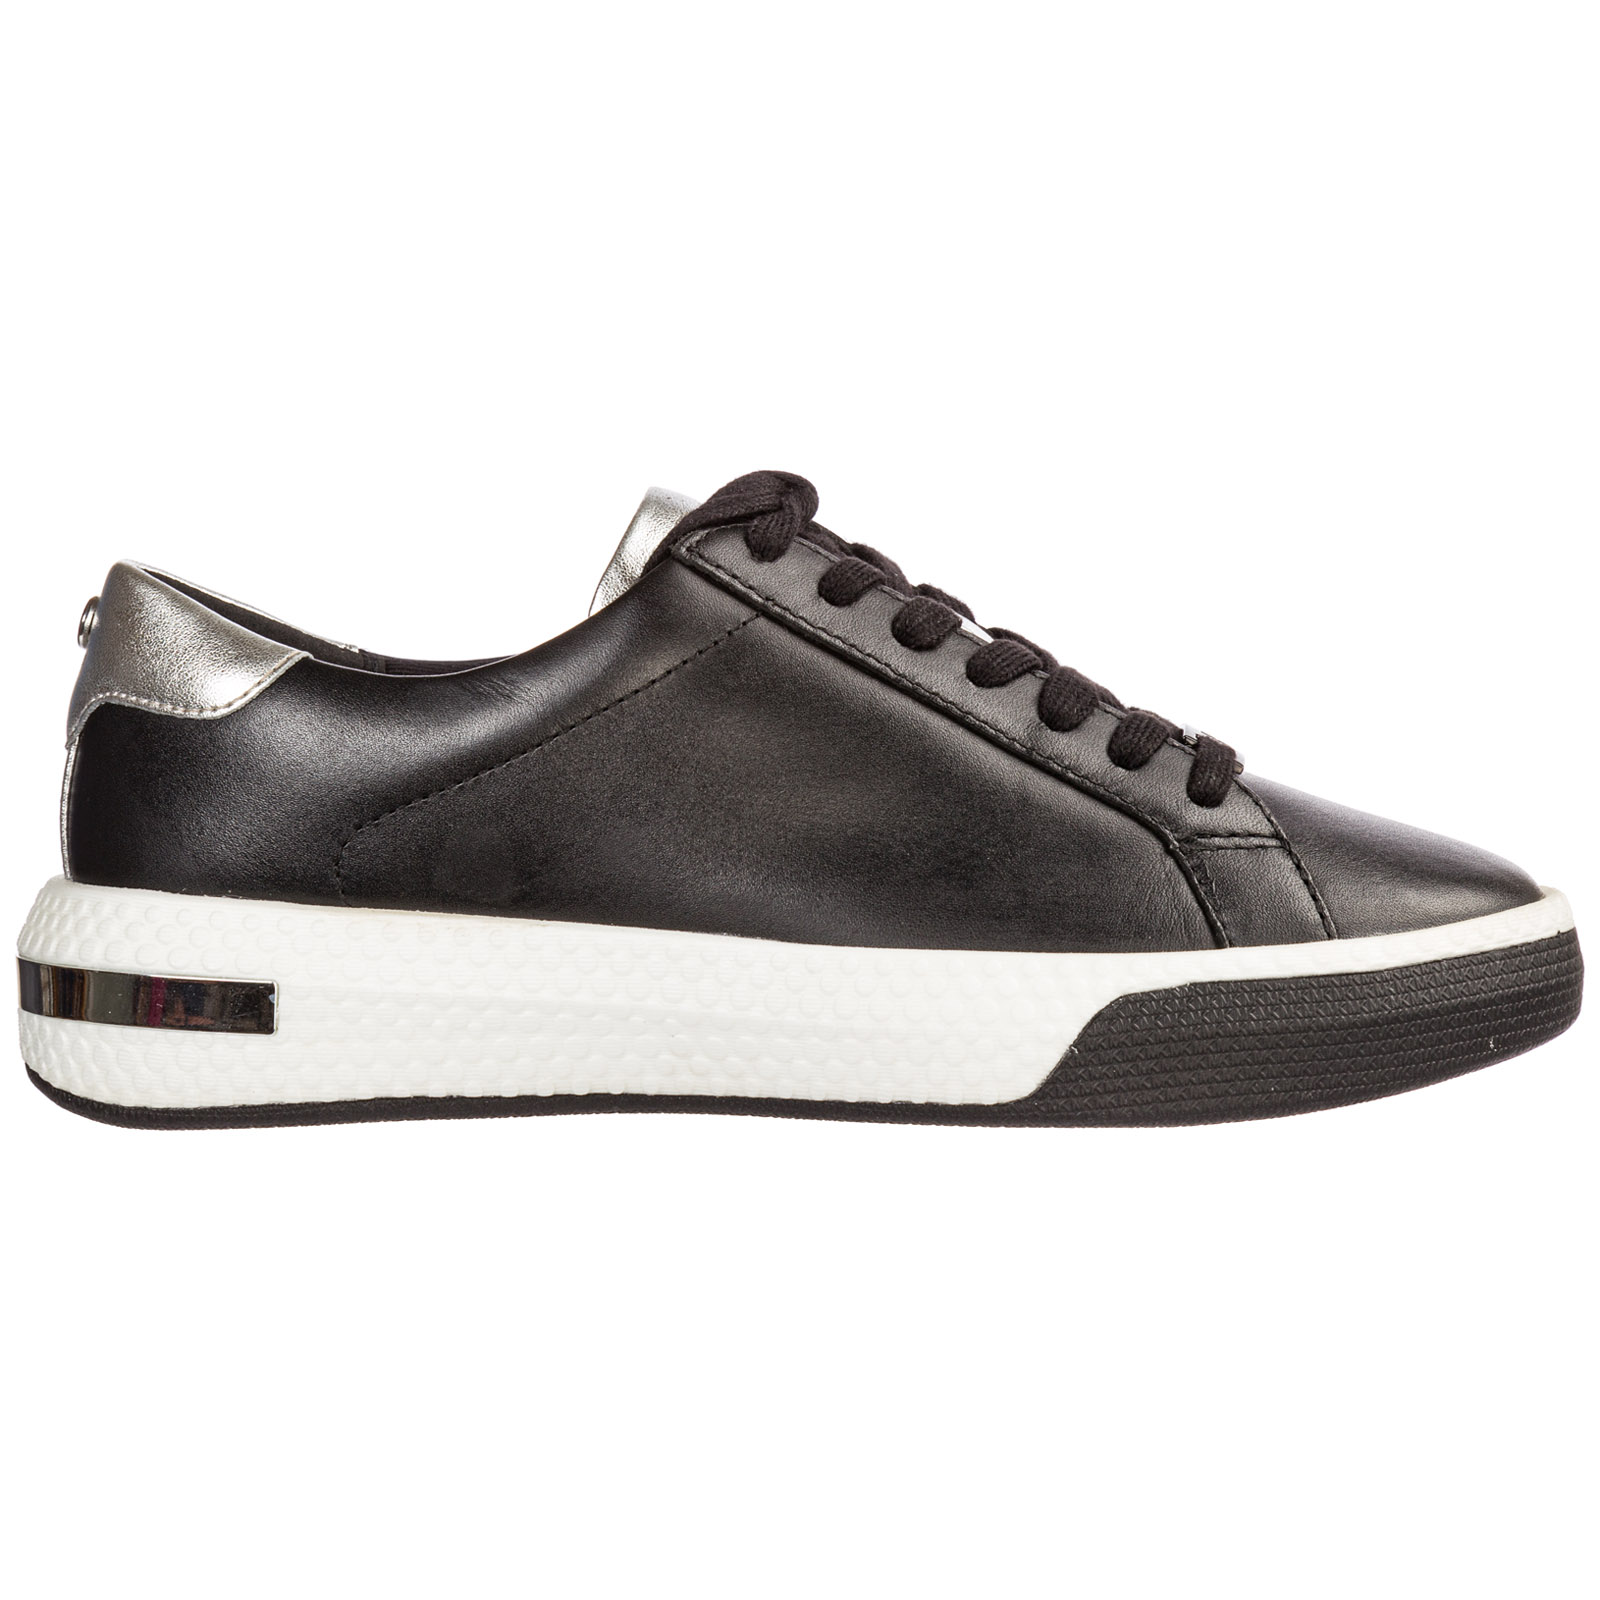 the best attitude af3a5 6b060 Scarpe sneakers donna in pelle codie